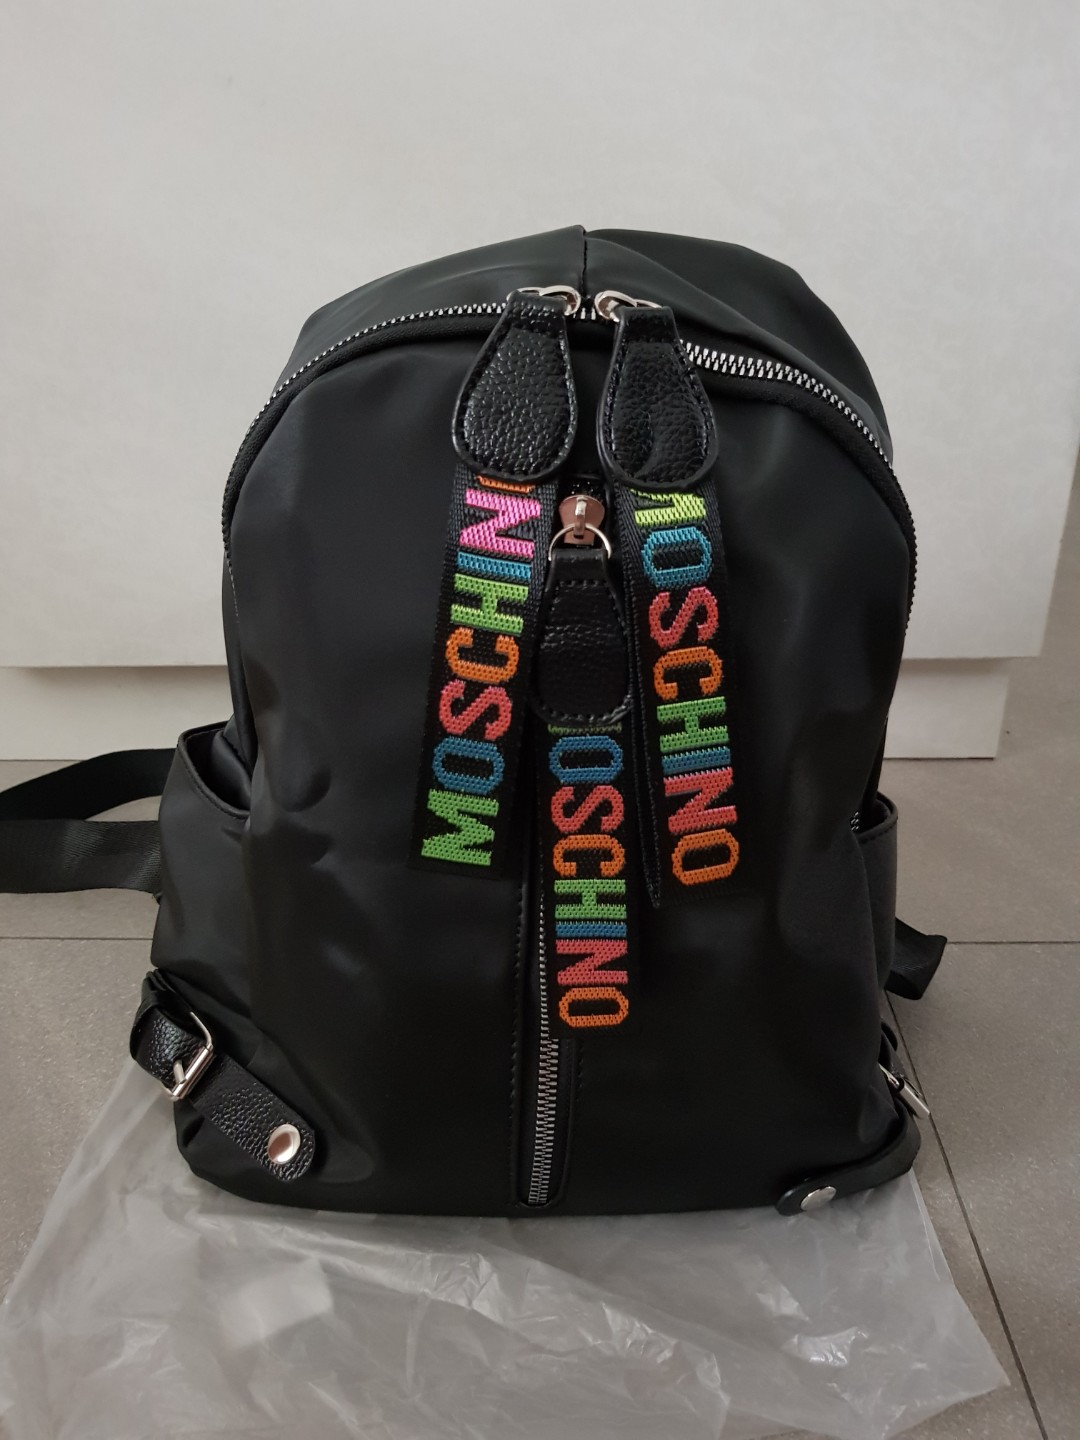 b8754b6682 MOSCHINO Backpack, Women's Fashion, Bags & Wallets, Backpacks on ...